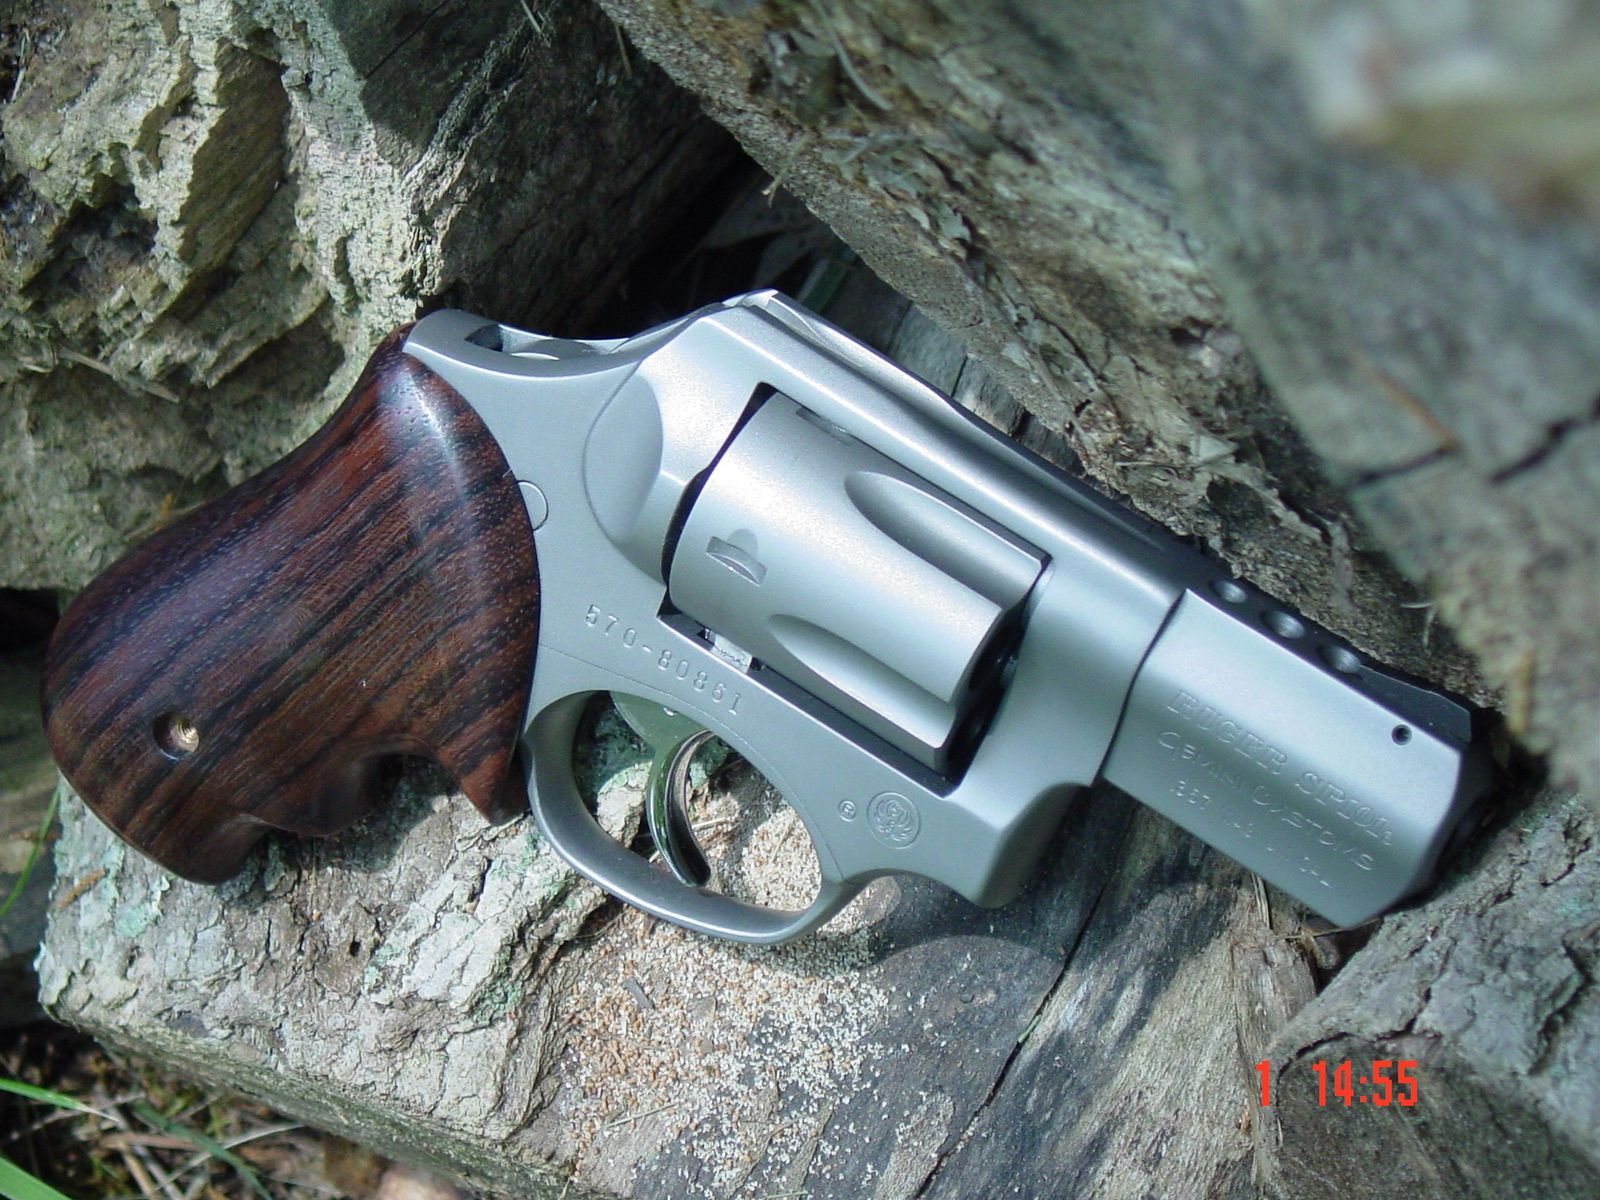 Ruger Sp101 with Badger Grips Brand X EDC & Bushcraft